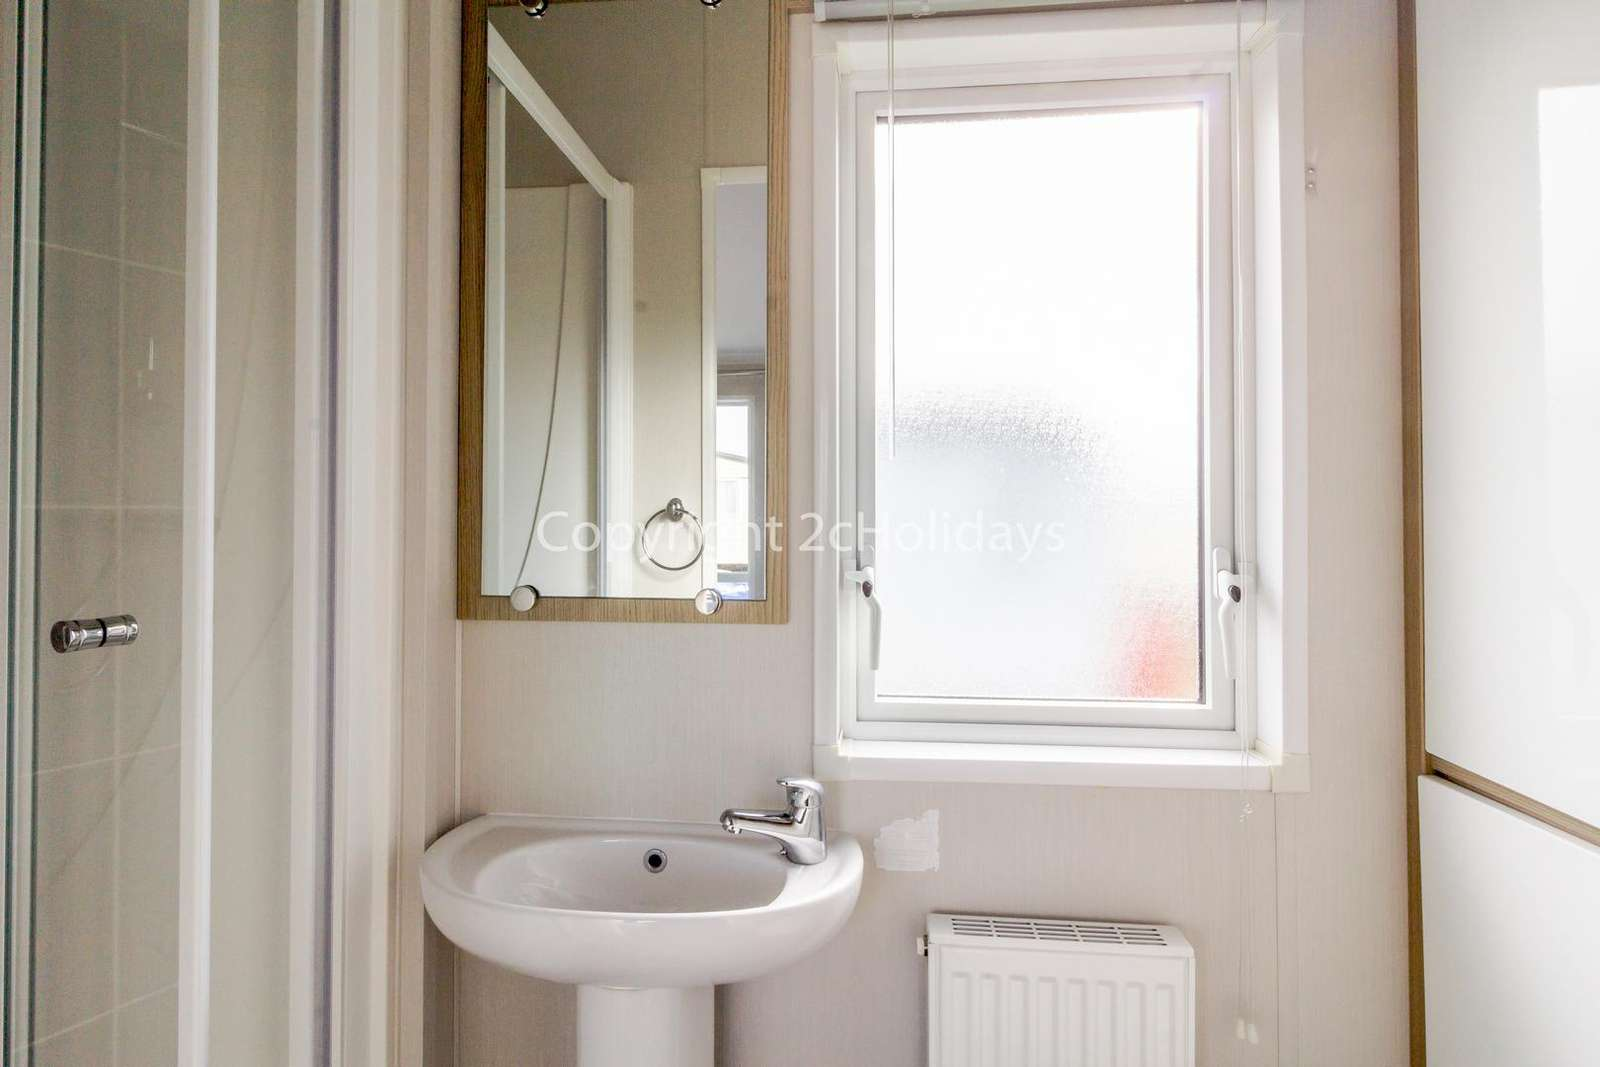 We ensure that our all holiday homes are cleaned to a high standard